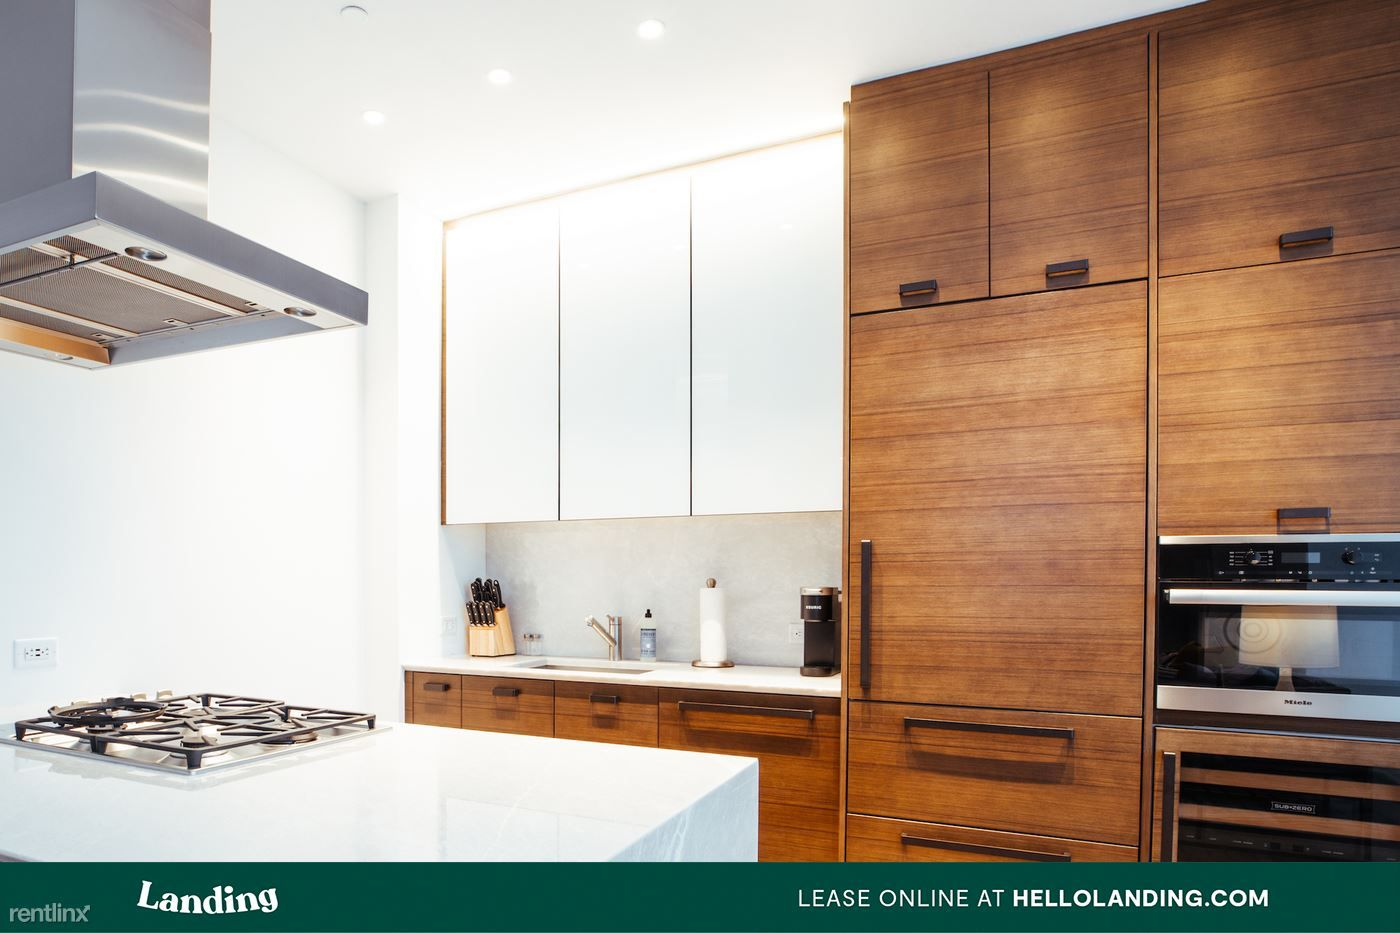 Landing Furnished Apartment The Gallery for rent